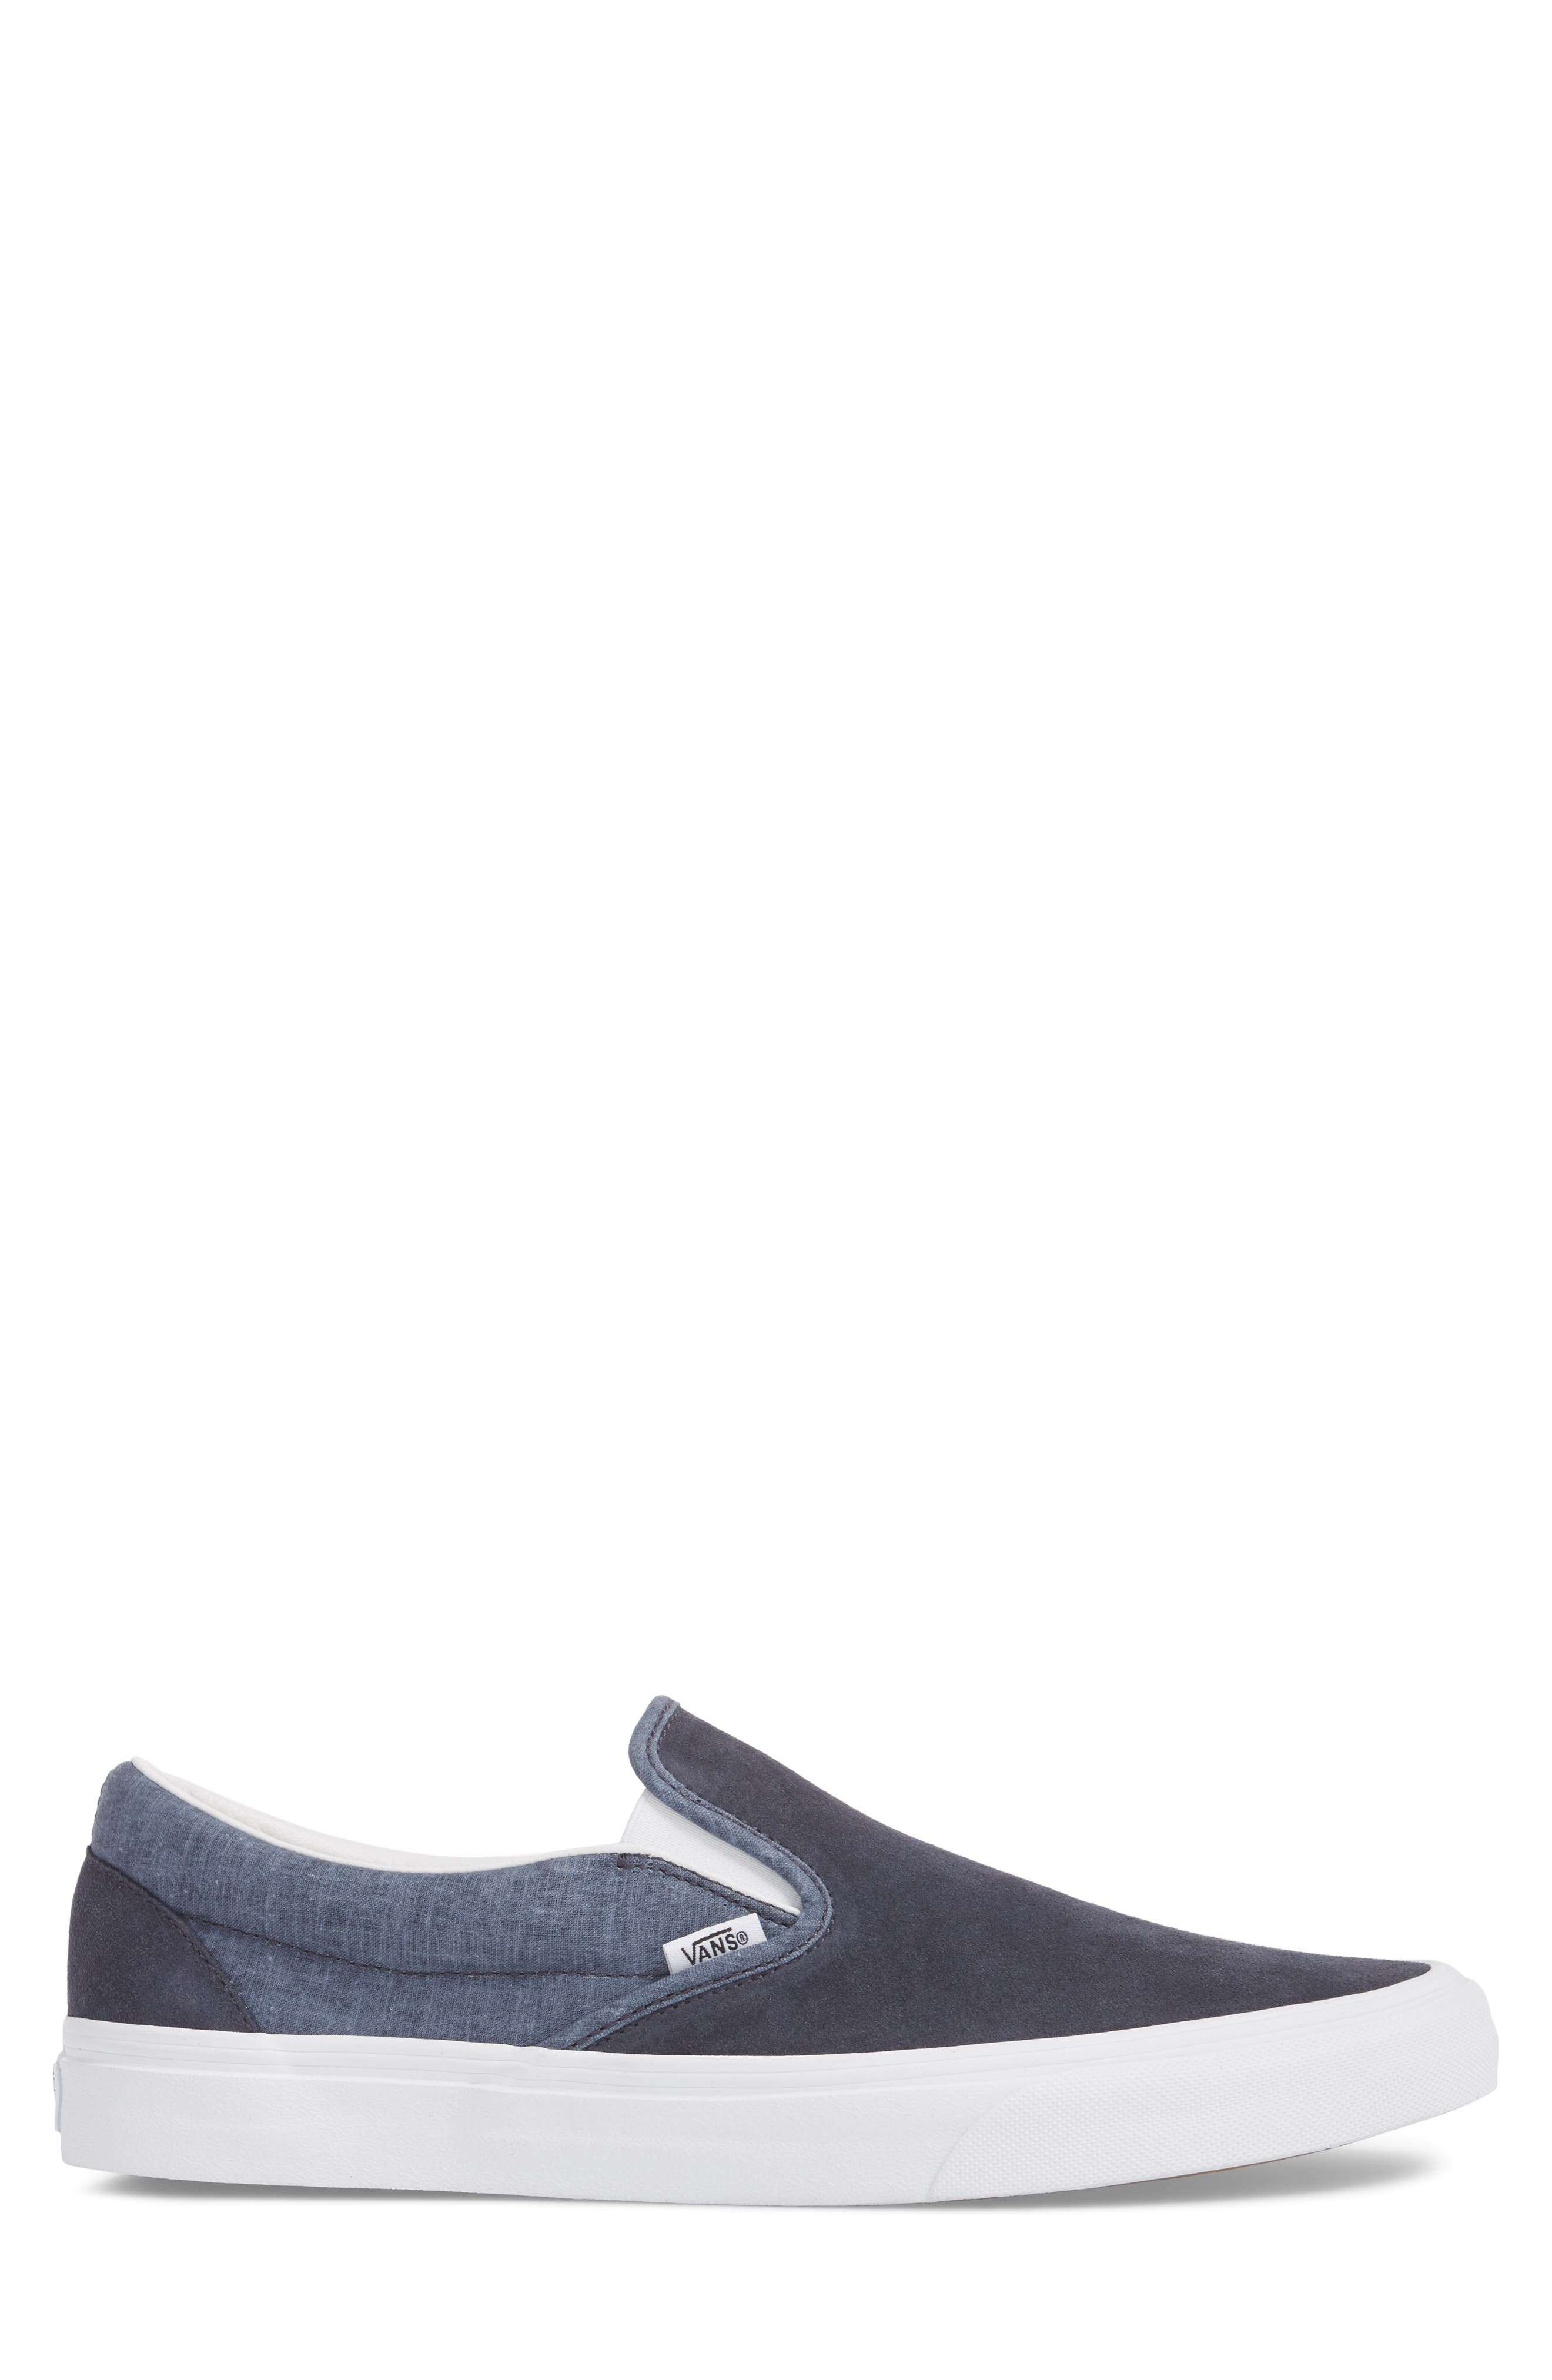 'Classic' Slip-On Sneaker,                             Alternate thumbnail 6, color,                             Parisian Night Suede